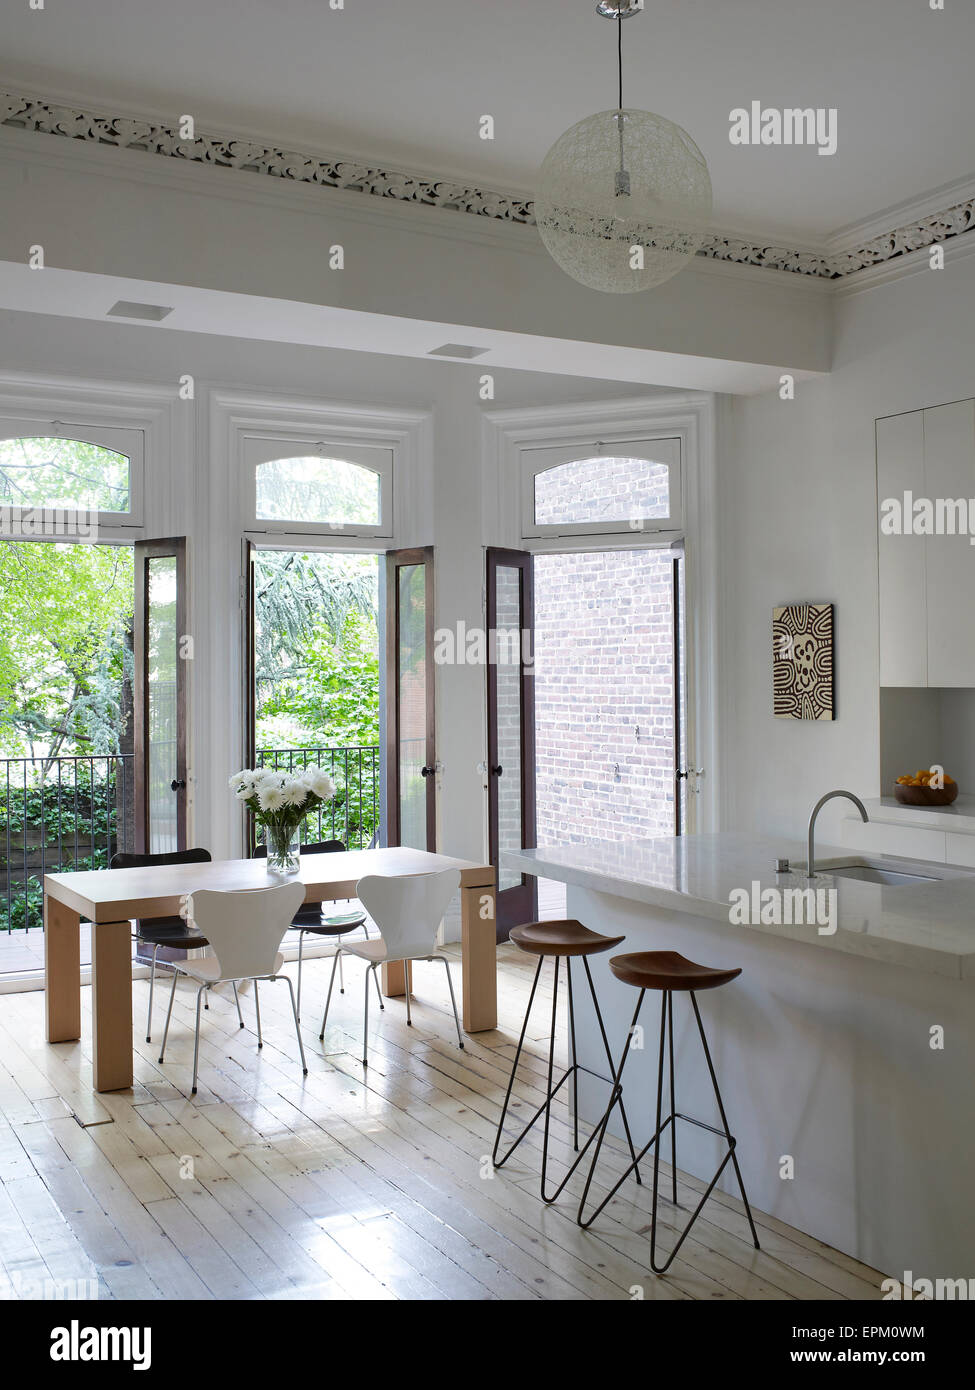 Breakfast Bar, Stools And Small Dining Table In White Kitchen With Open  Glass Doors Leading To Garden, Chelsea Townhouse, New York, USA